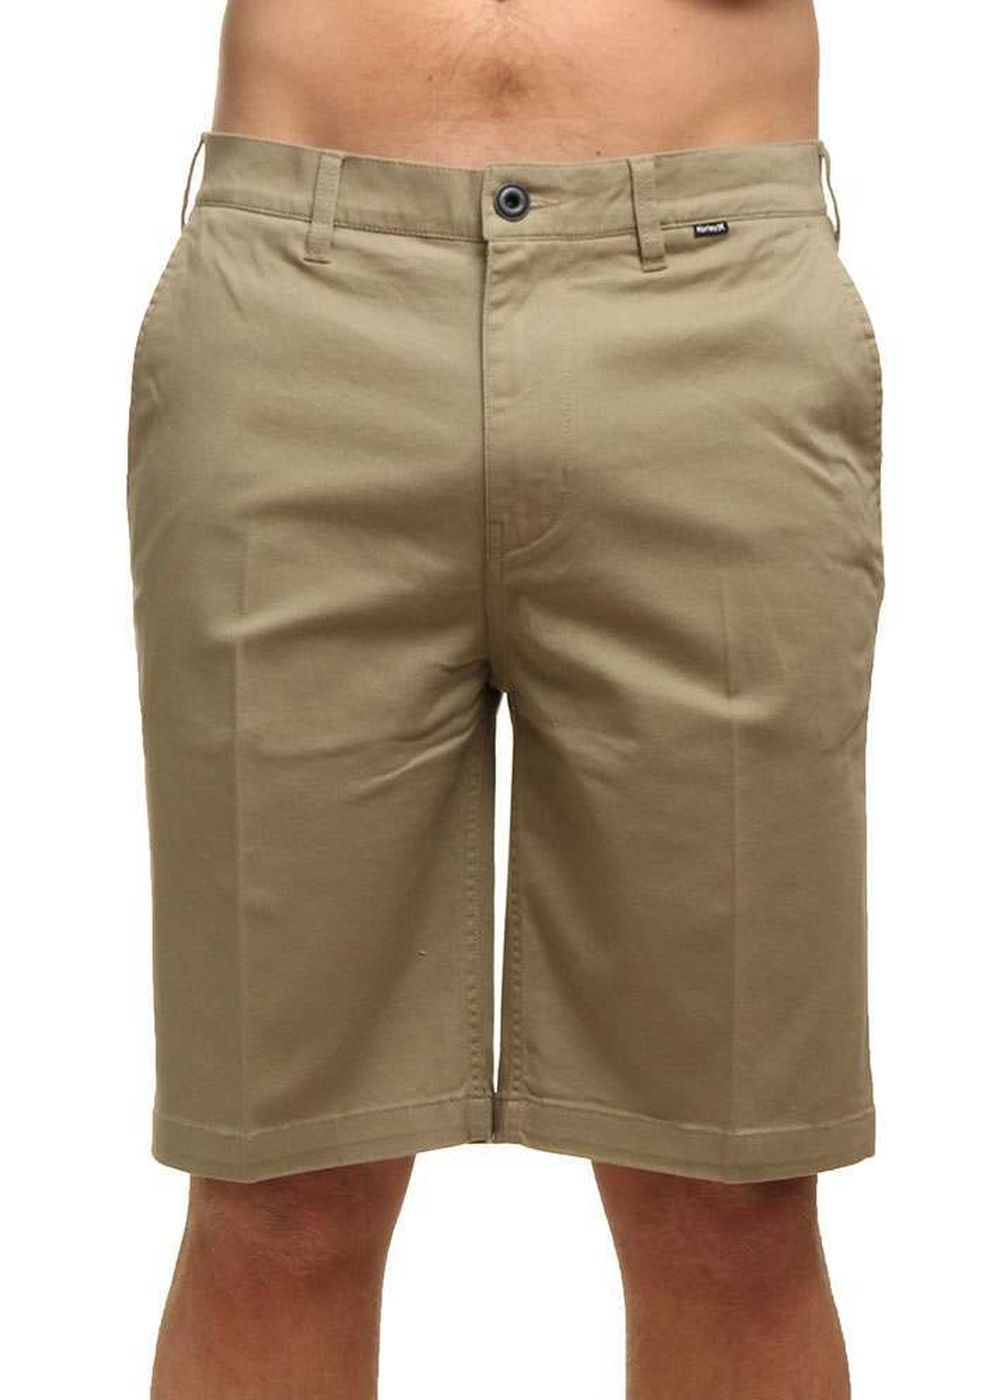 hurley-one-and-only-chino-shorts-khaki